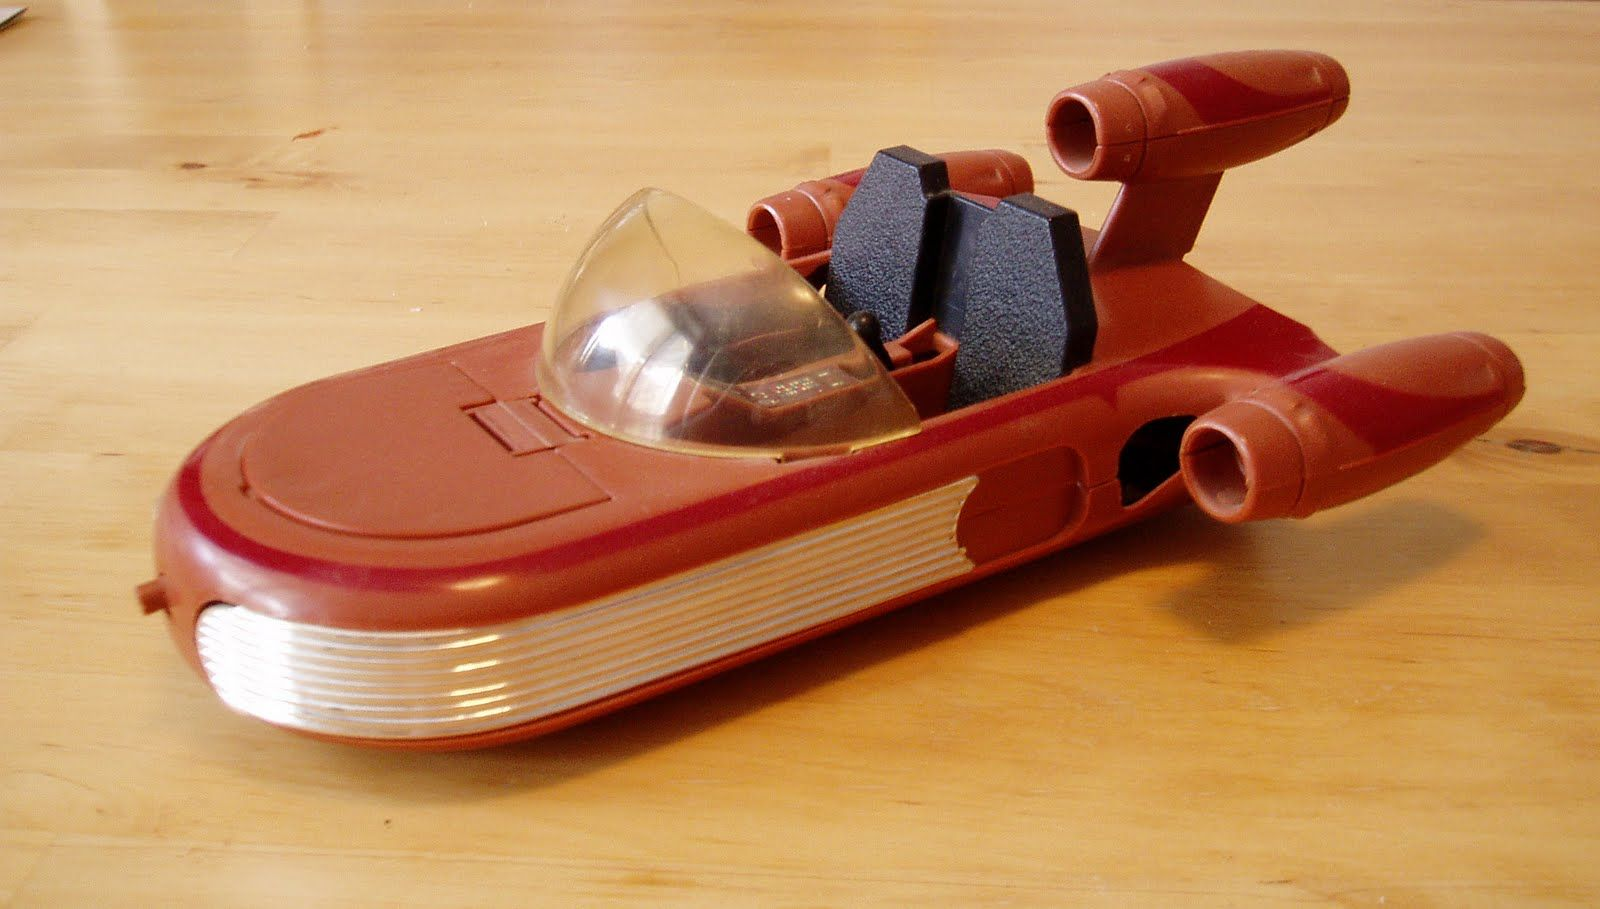 Star Wars Toys 1980s : A toy model of the landspeeder hover car used by luke